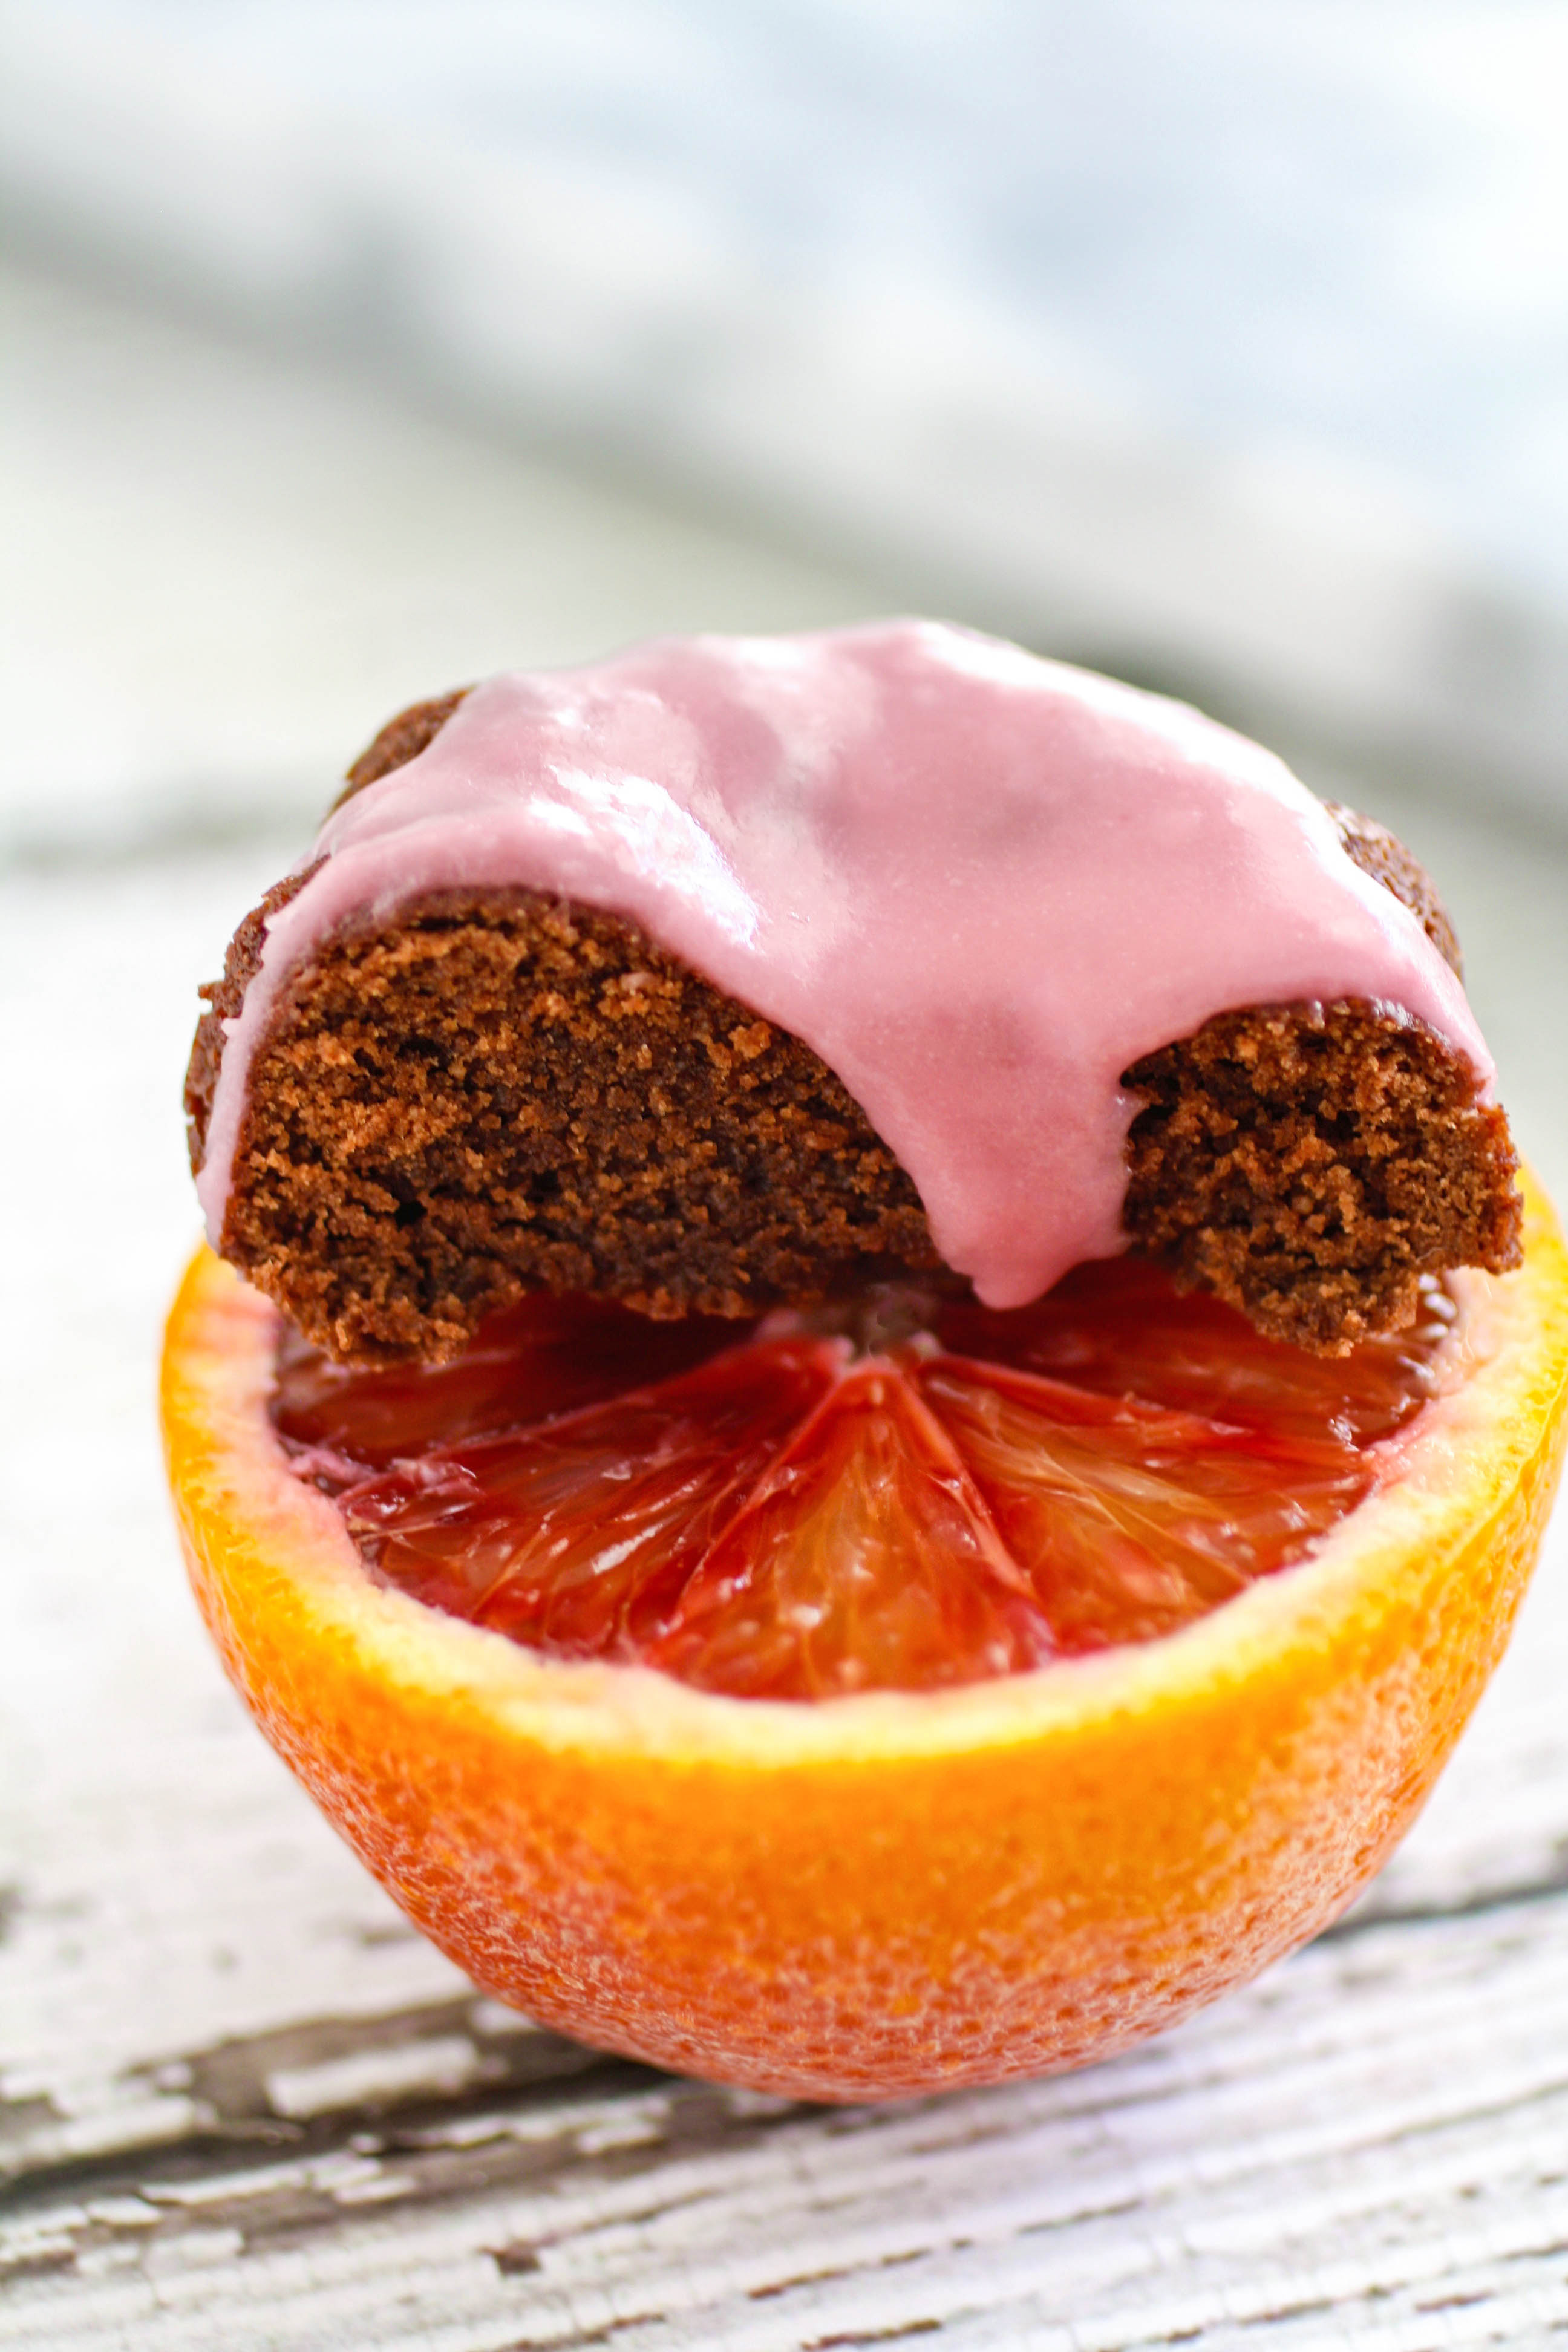 Mini Blood Orange Scented Chocolate-Ricotta Cakes make a lovely dessert! The blood orange flavor in these mini cakes is amazing!